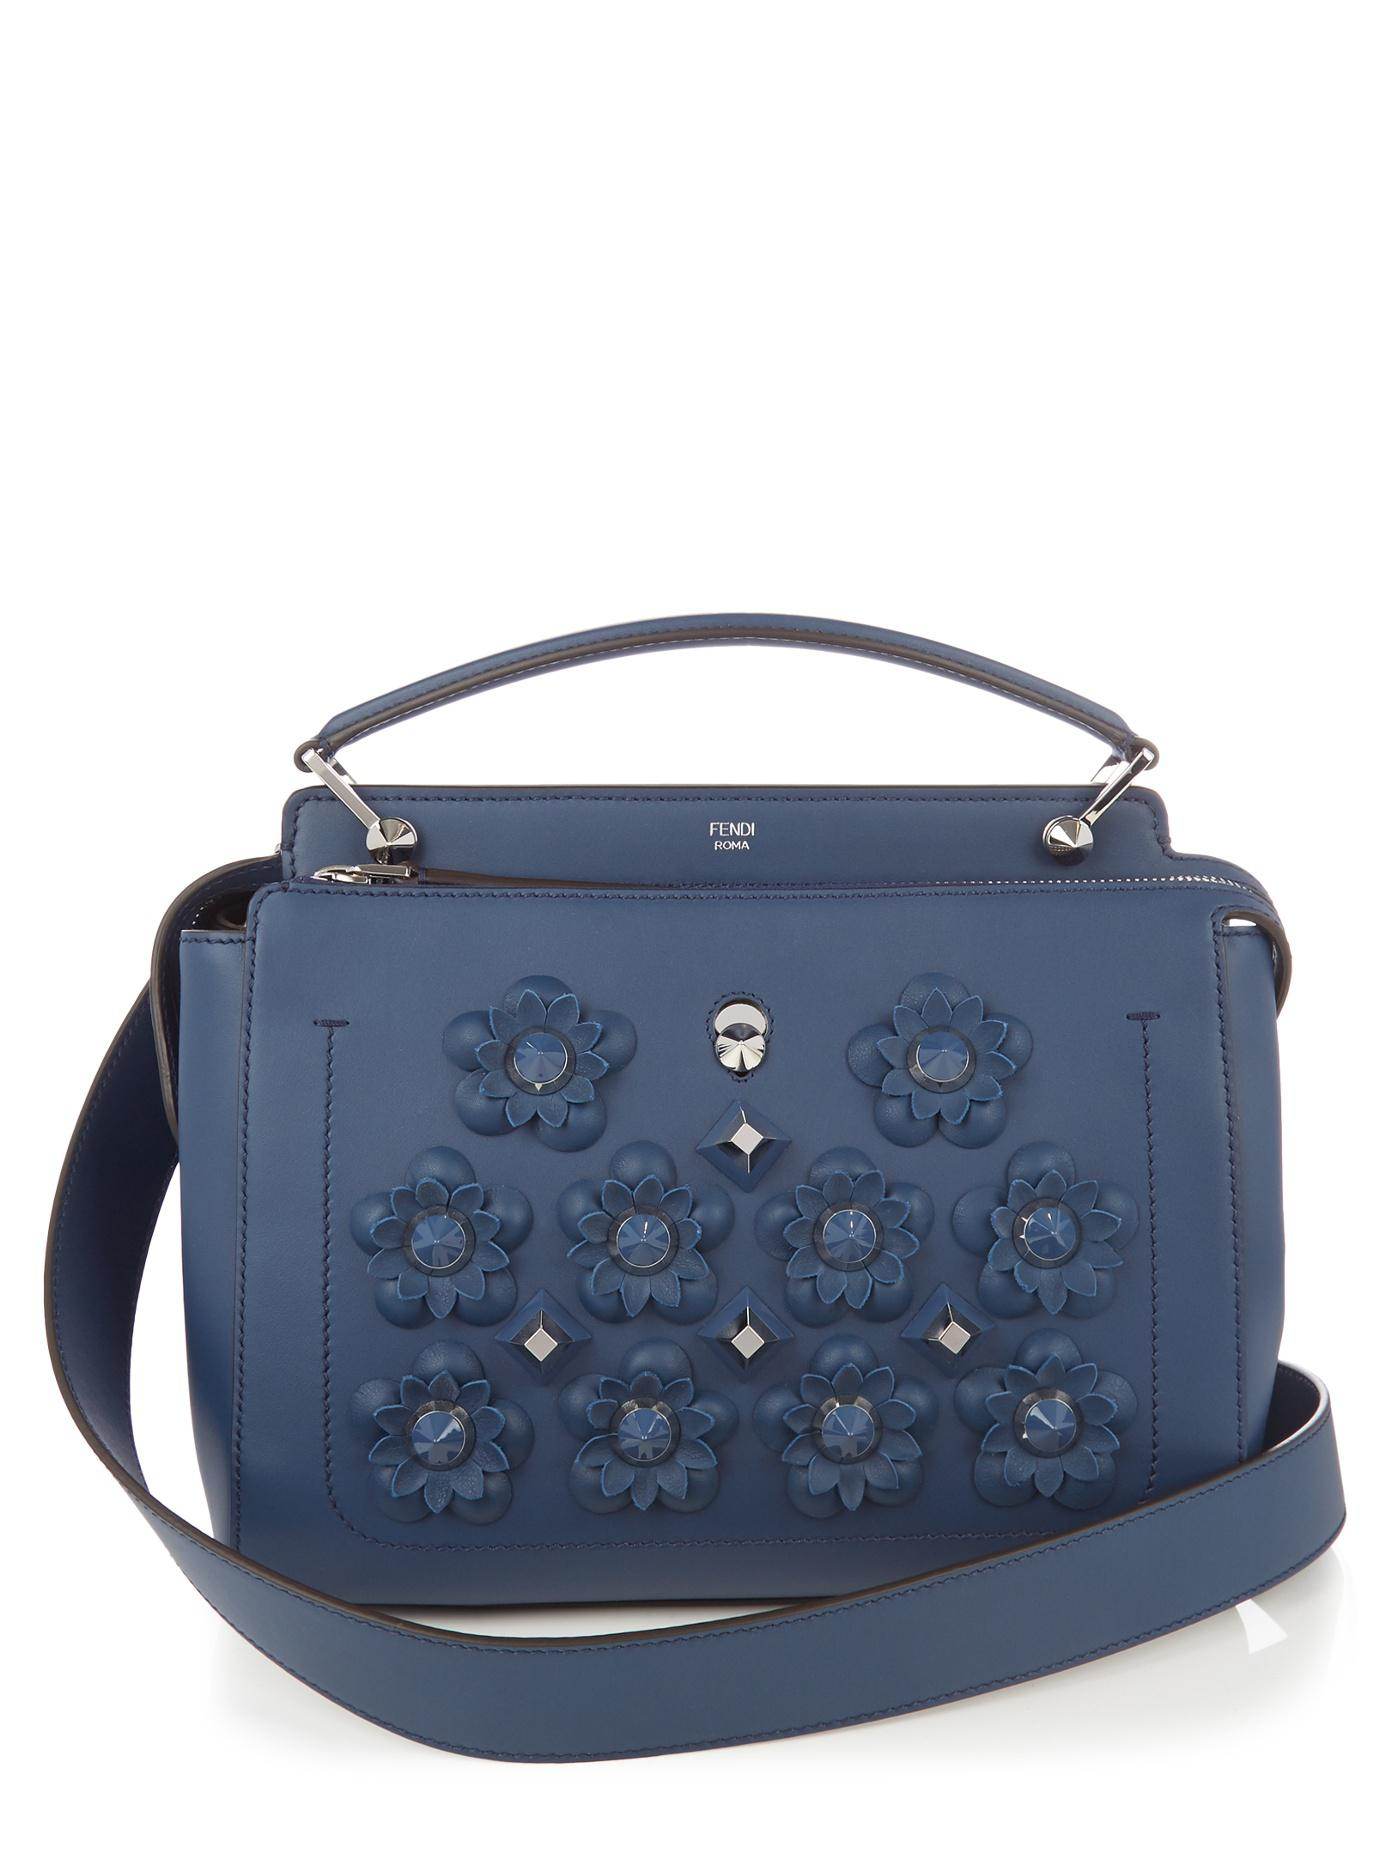 07b4010776db ... womens designer luxury bags fendi 0bacf fdd35 closeout lyst fendi  dotcom flowerland embellished leather bag in blue f7b26 dbc24 ...